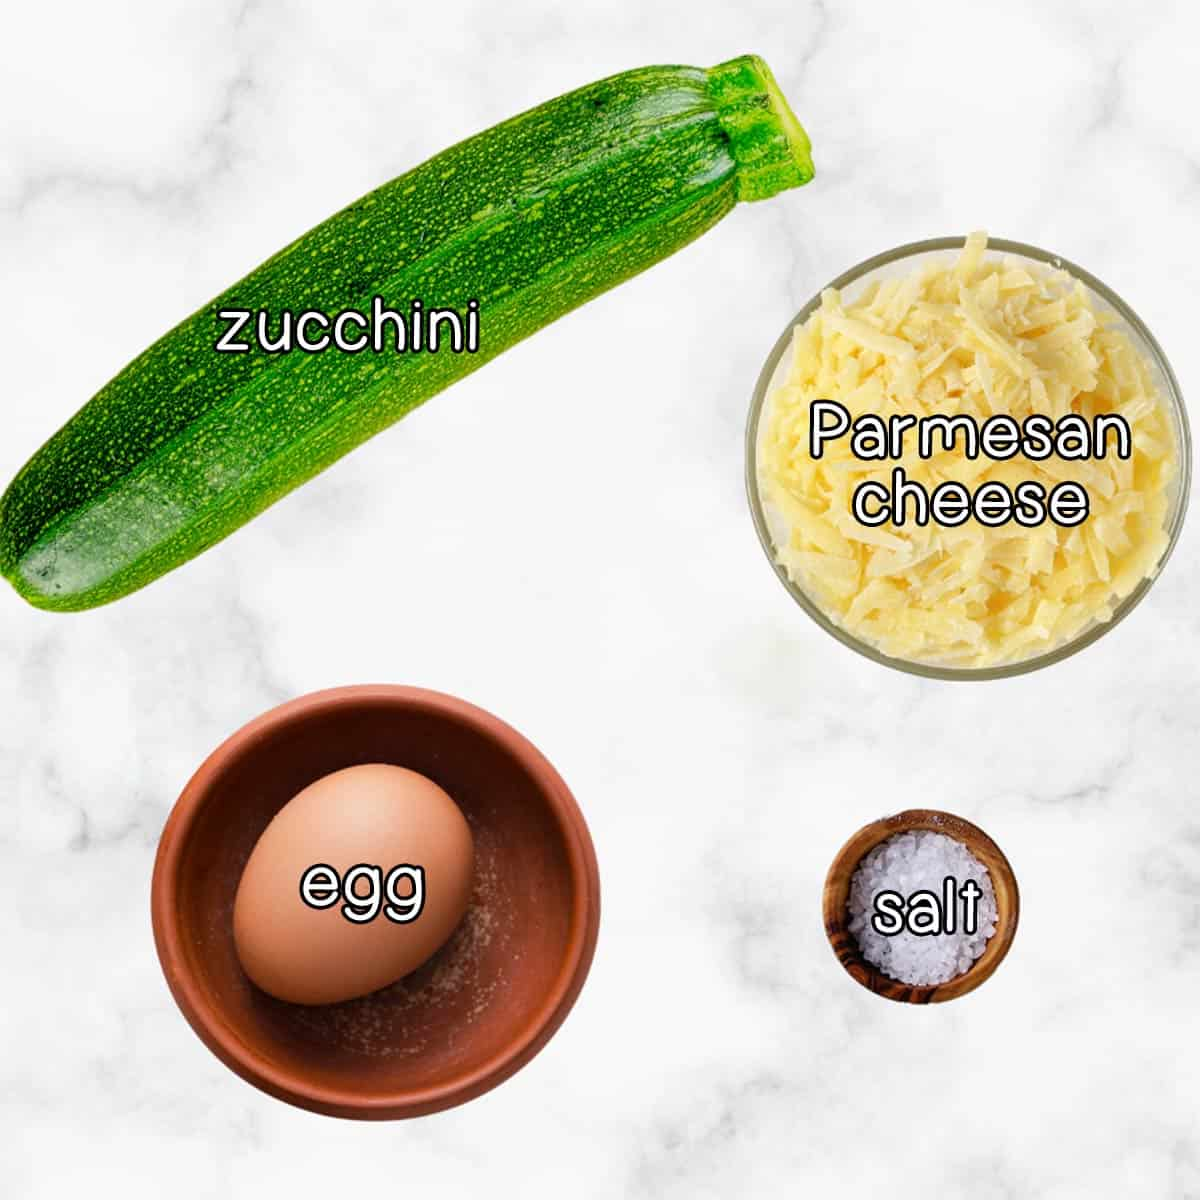 Overhead shot of ingredients- zucchini, parmesan cheese, an egg, and salt.